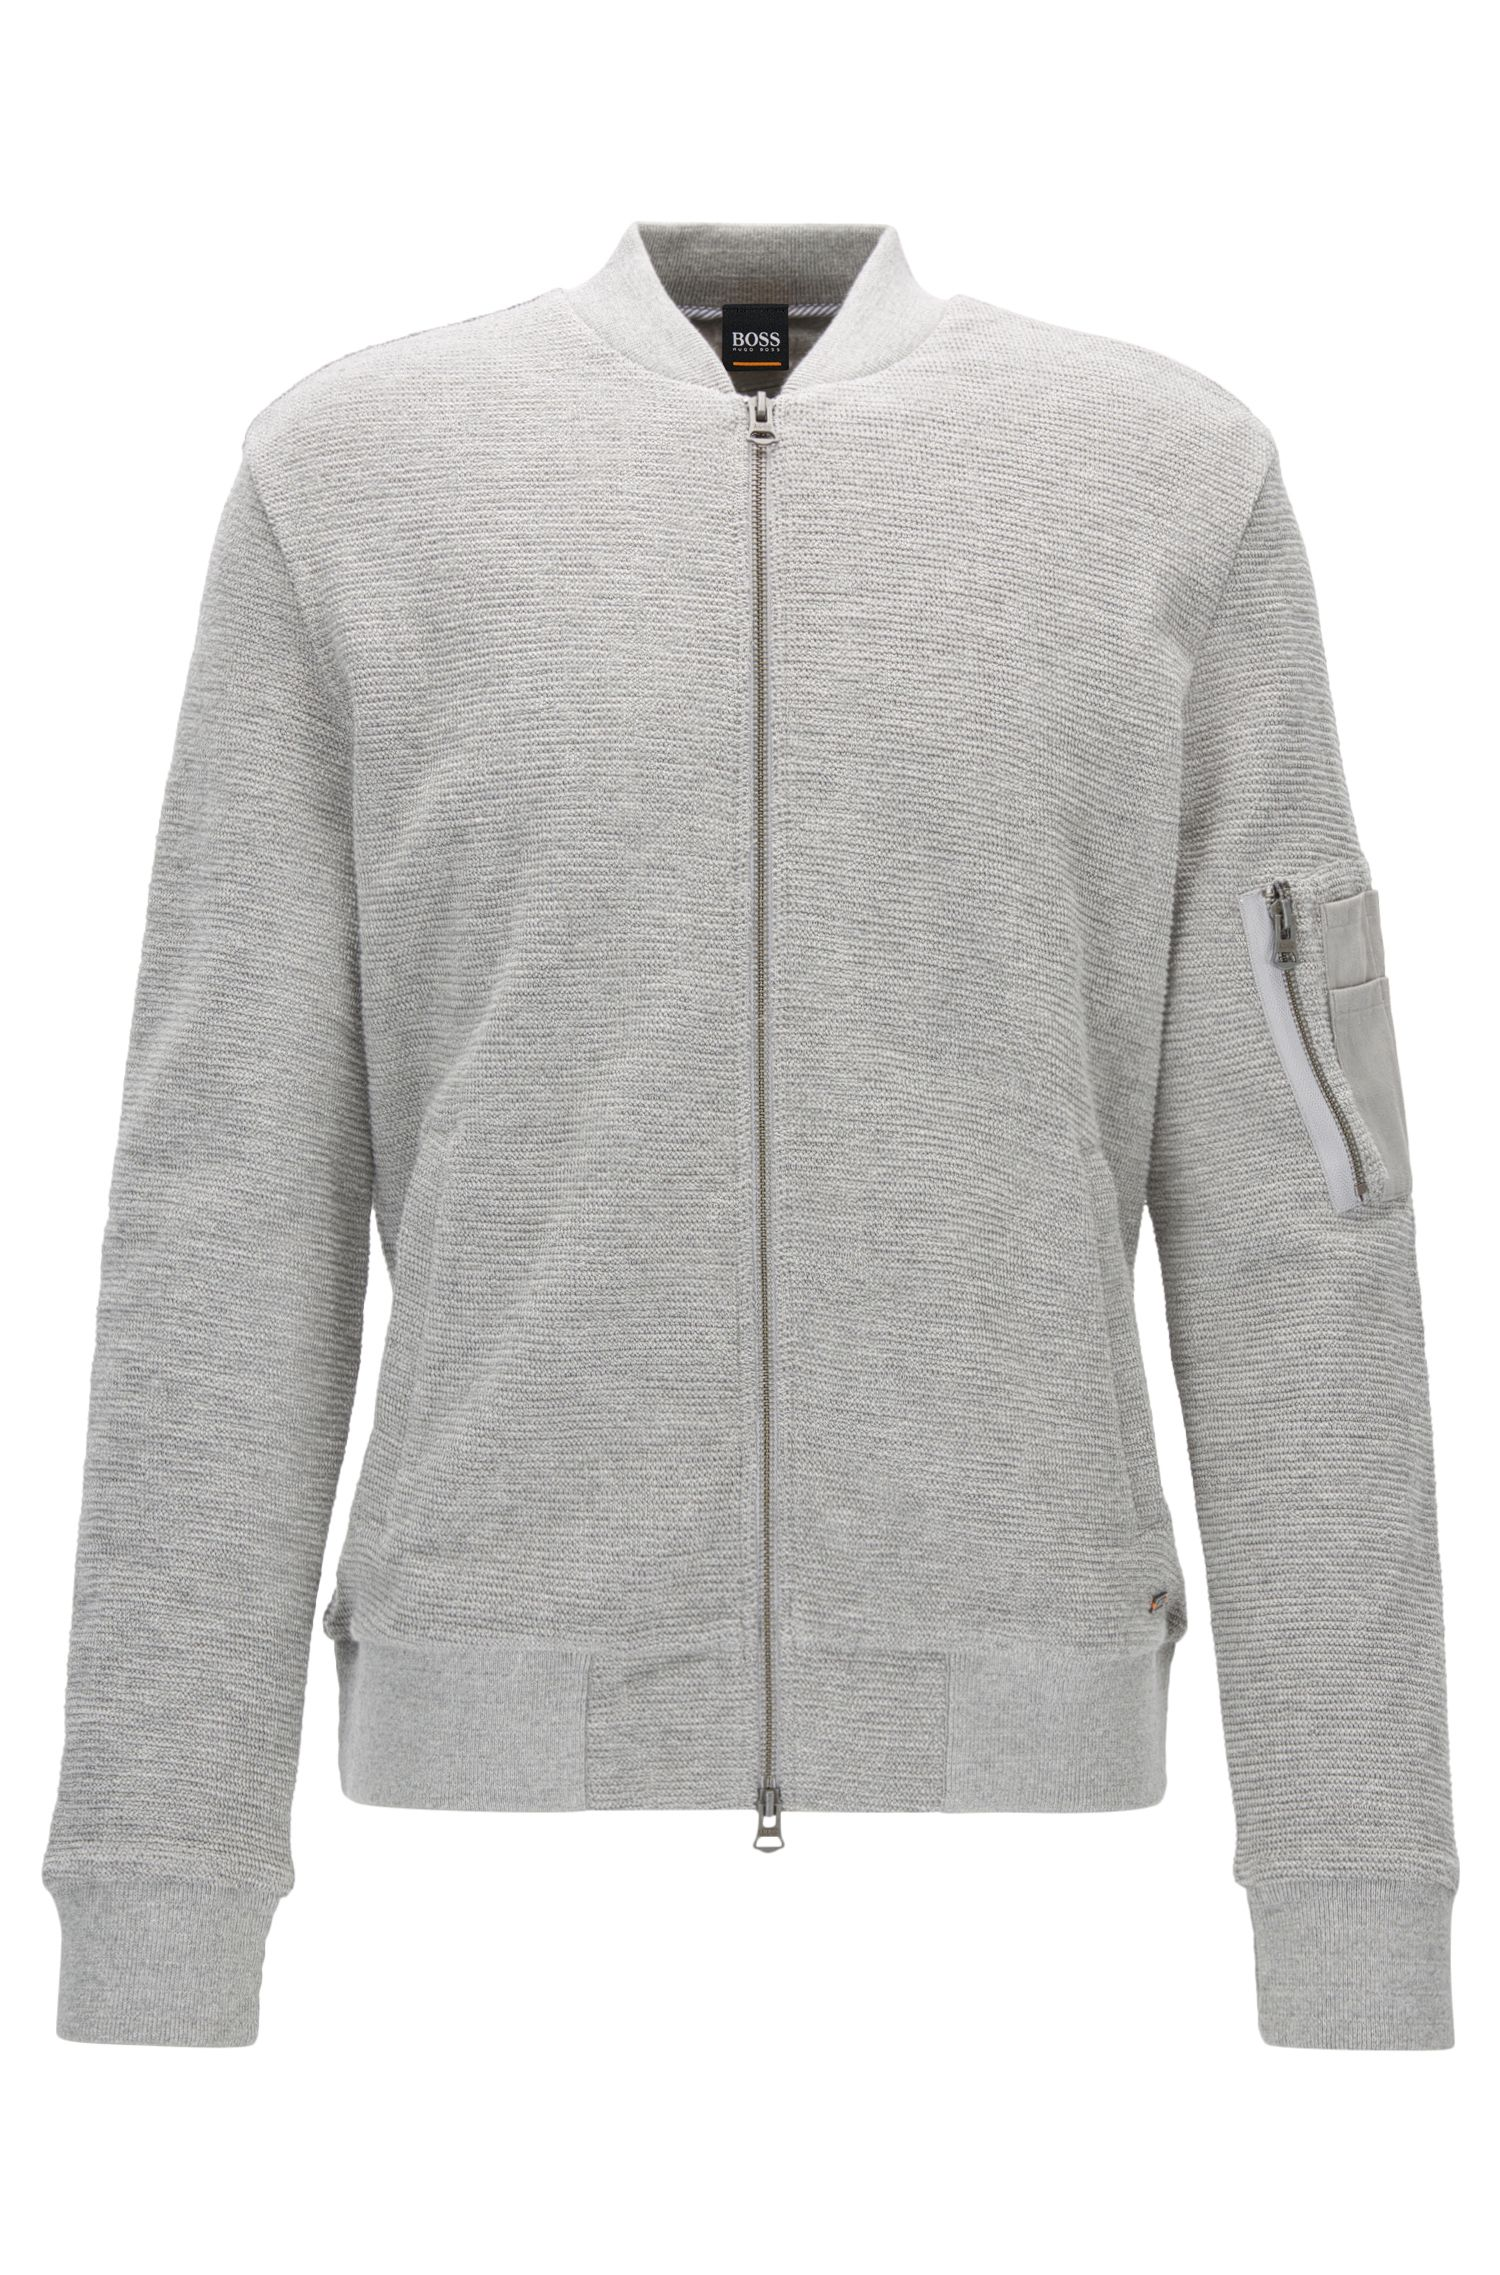 Bomber-style sweatshirt in cotton jacquard